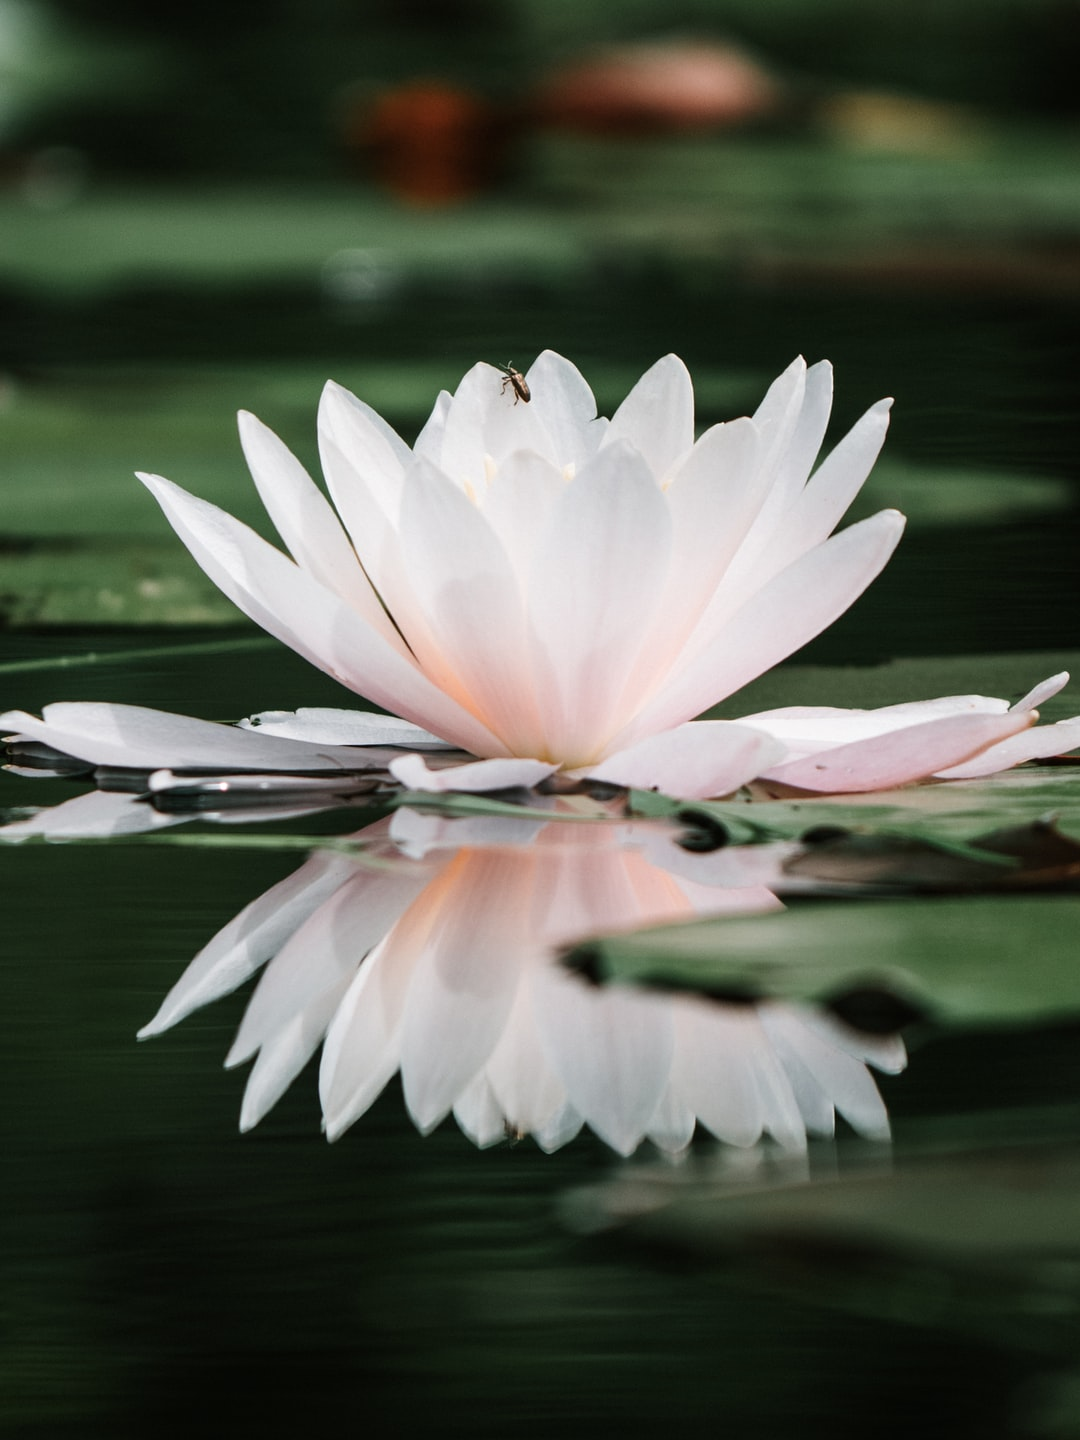 Symmetrical reflection of a small beetle resting on a pink water lily, surrounded by lily pads.